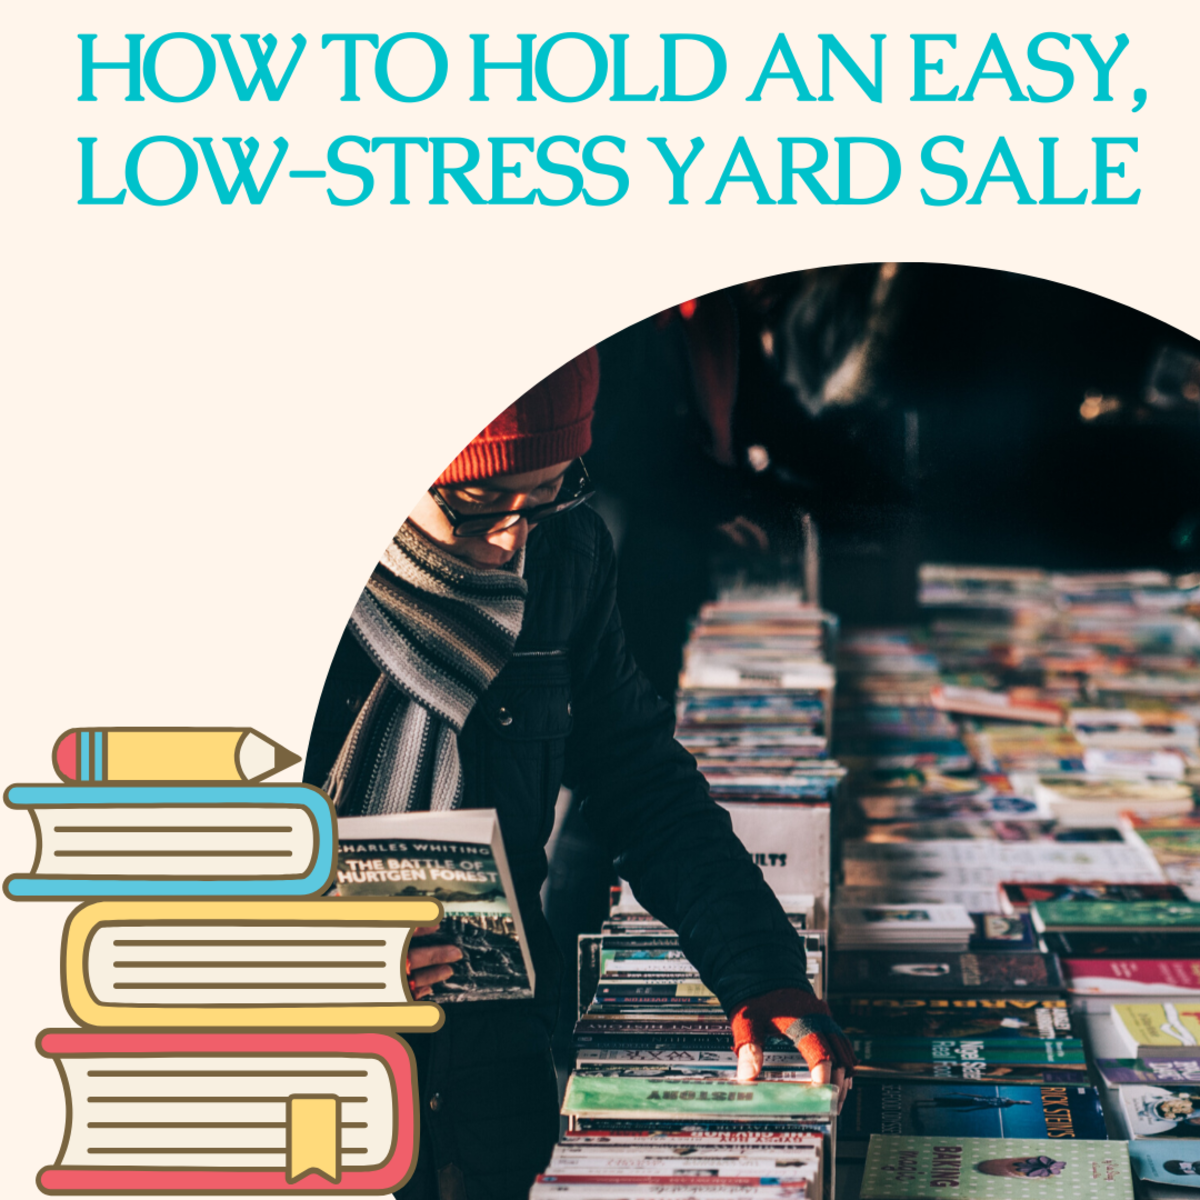 Yard sales don't have to be so difficult. Read on for helpful advice.